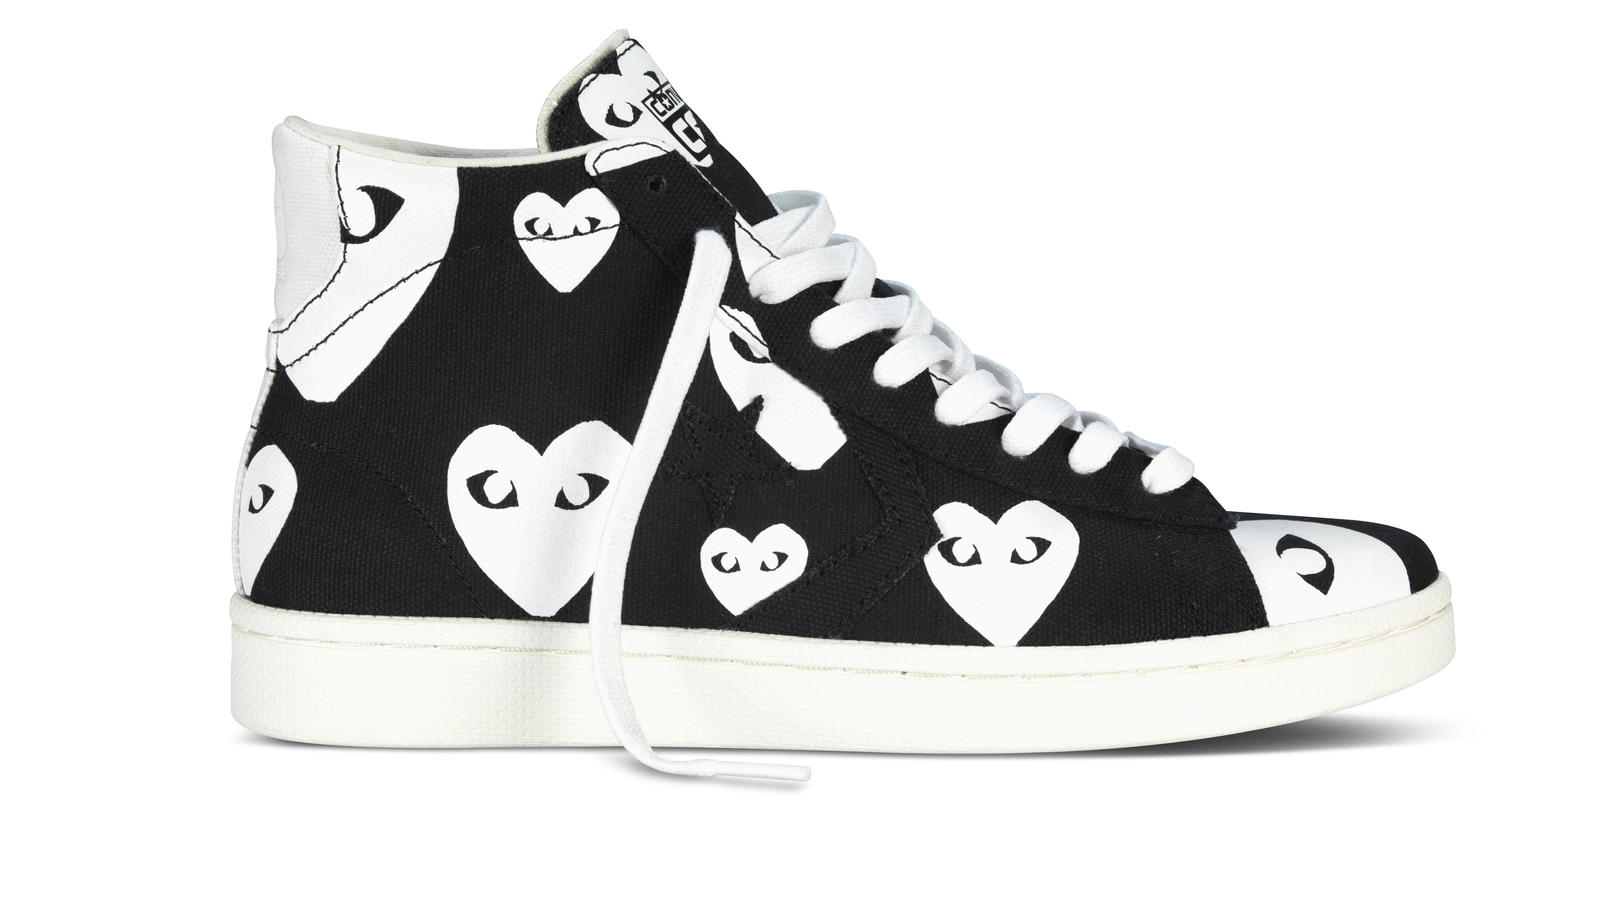 Converse X Cdg Black Hi Right Original